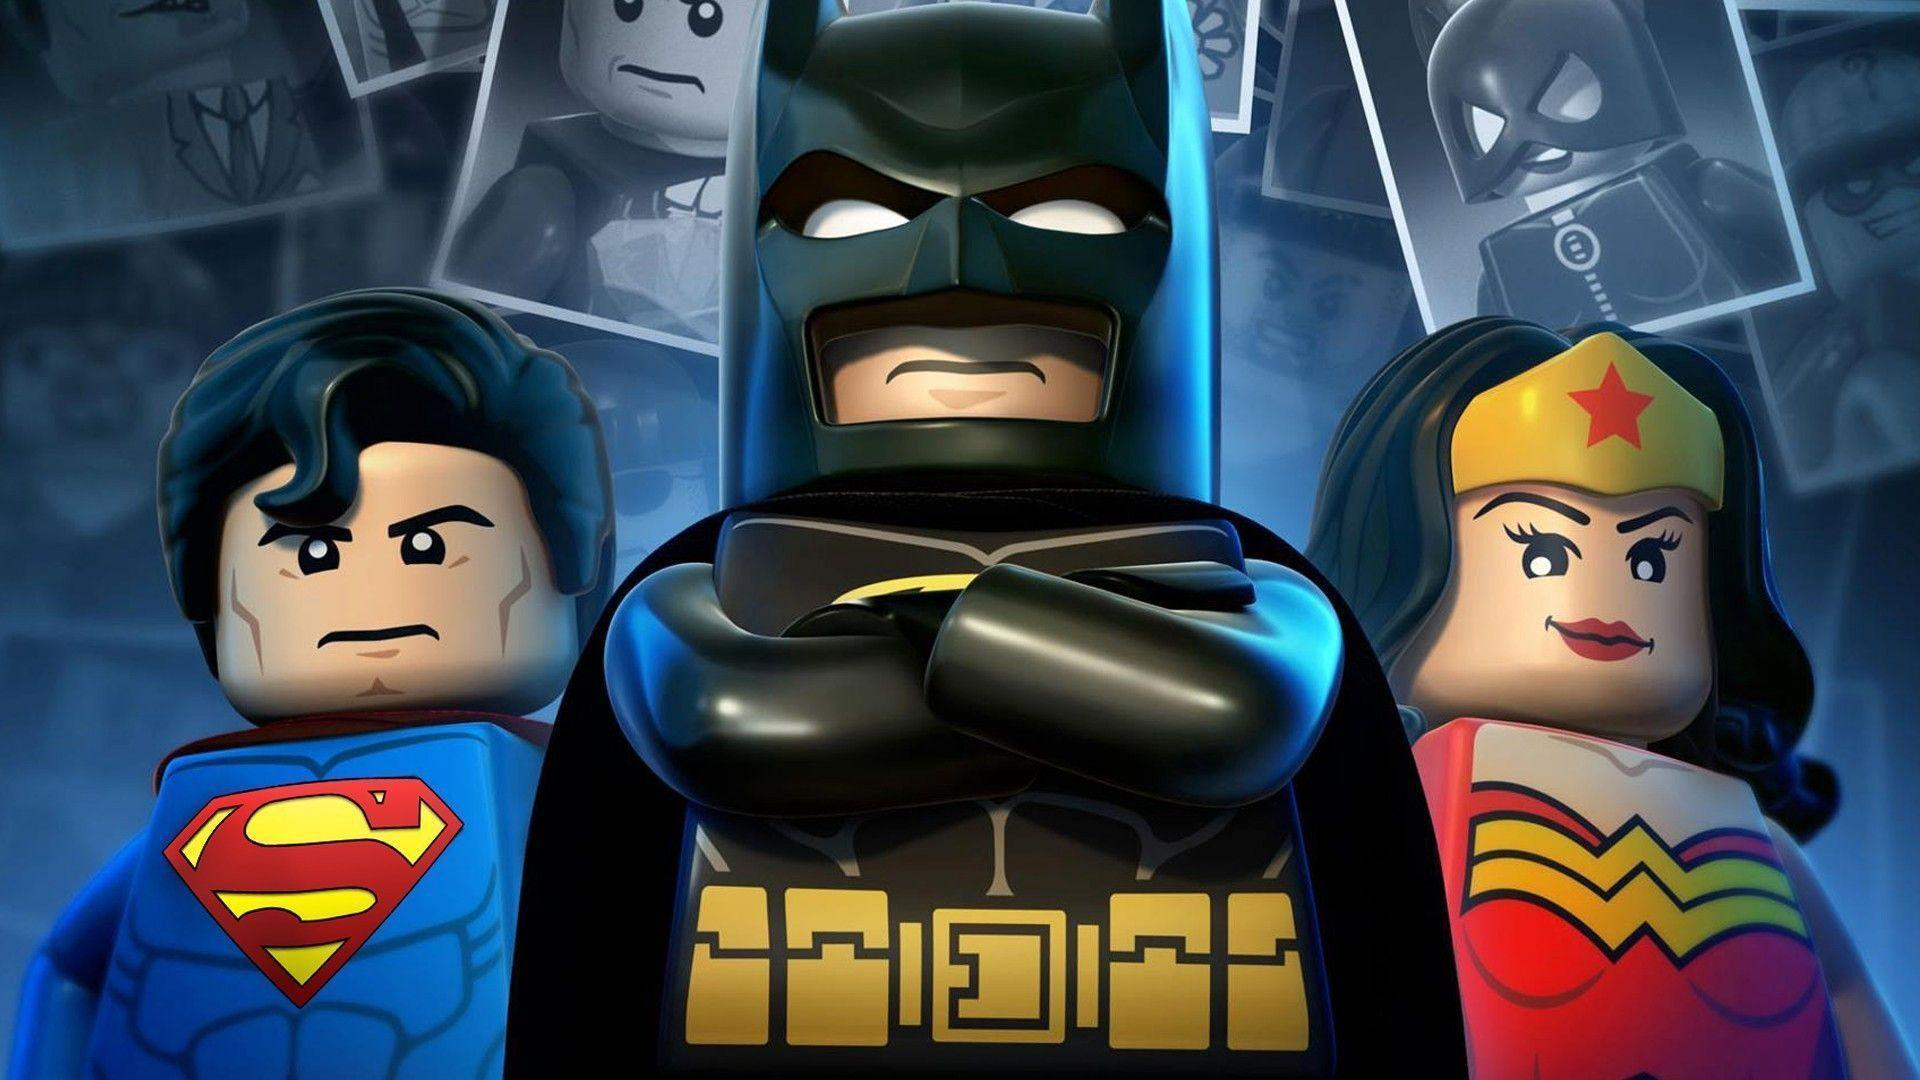 Batman Drops the Mic In the First The LEGO Batman Movie Trailer